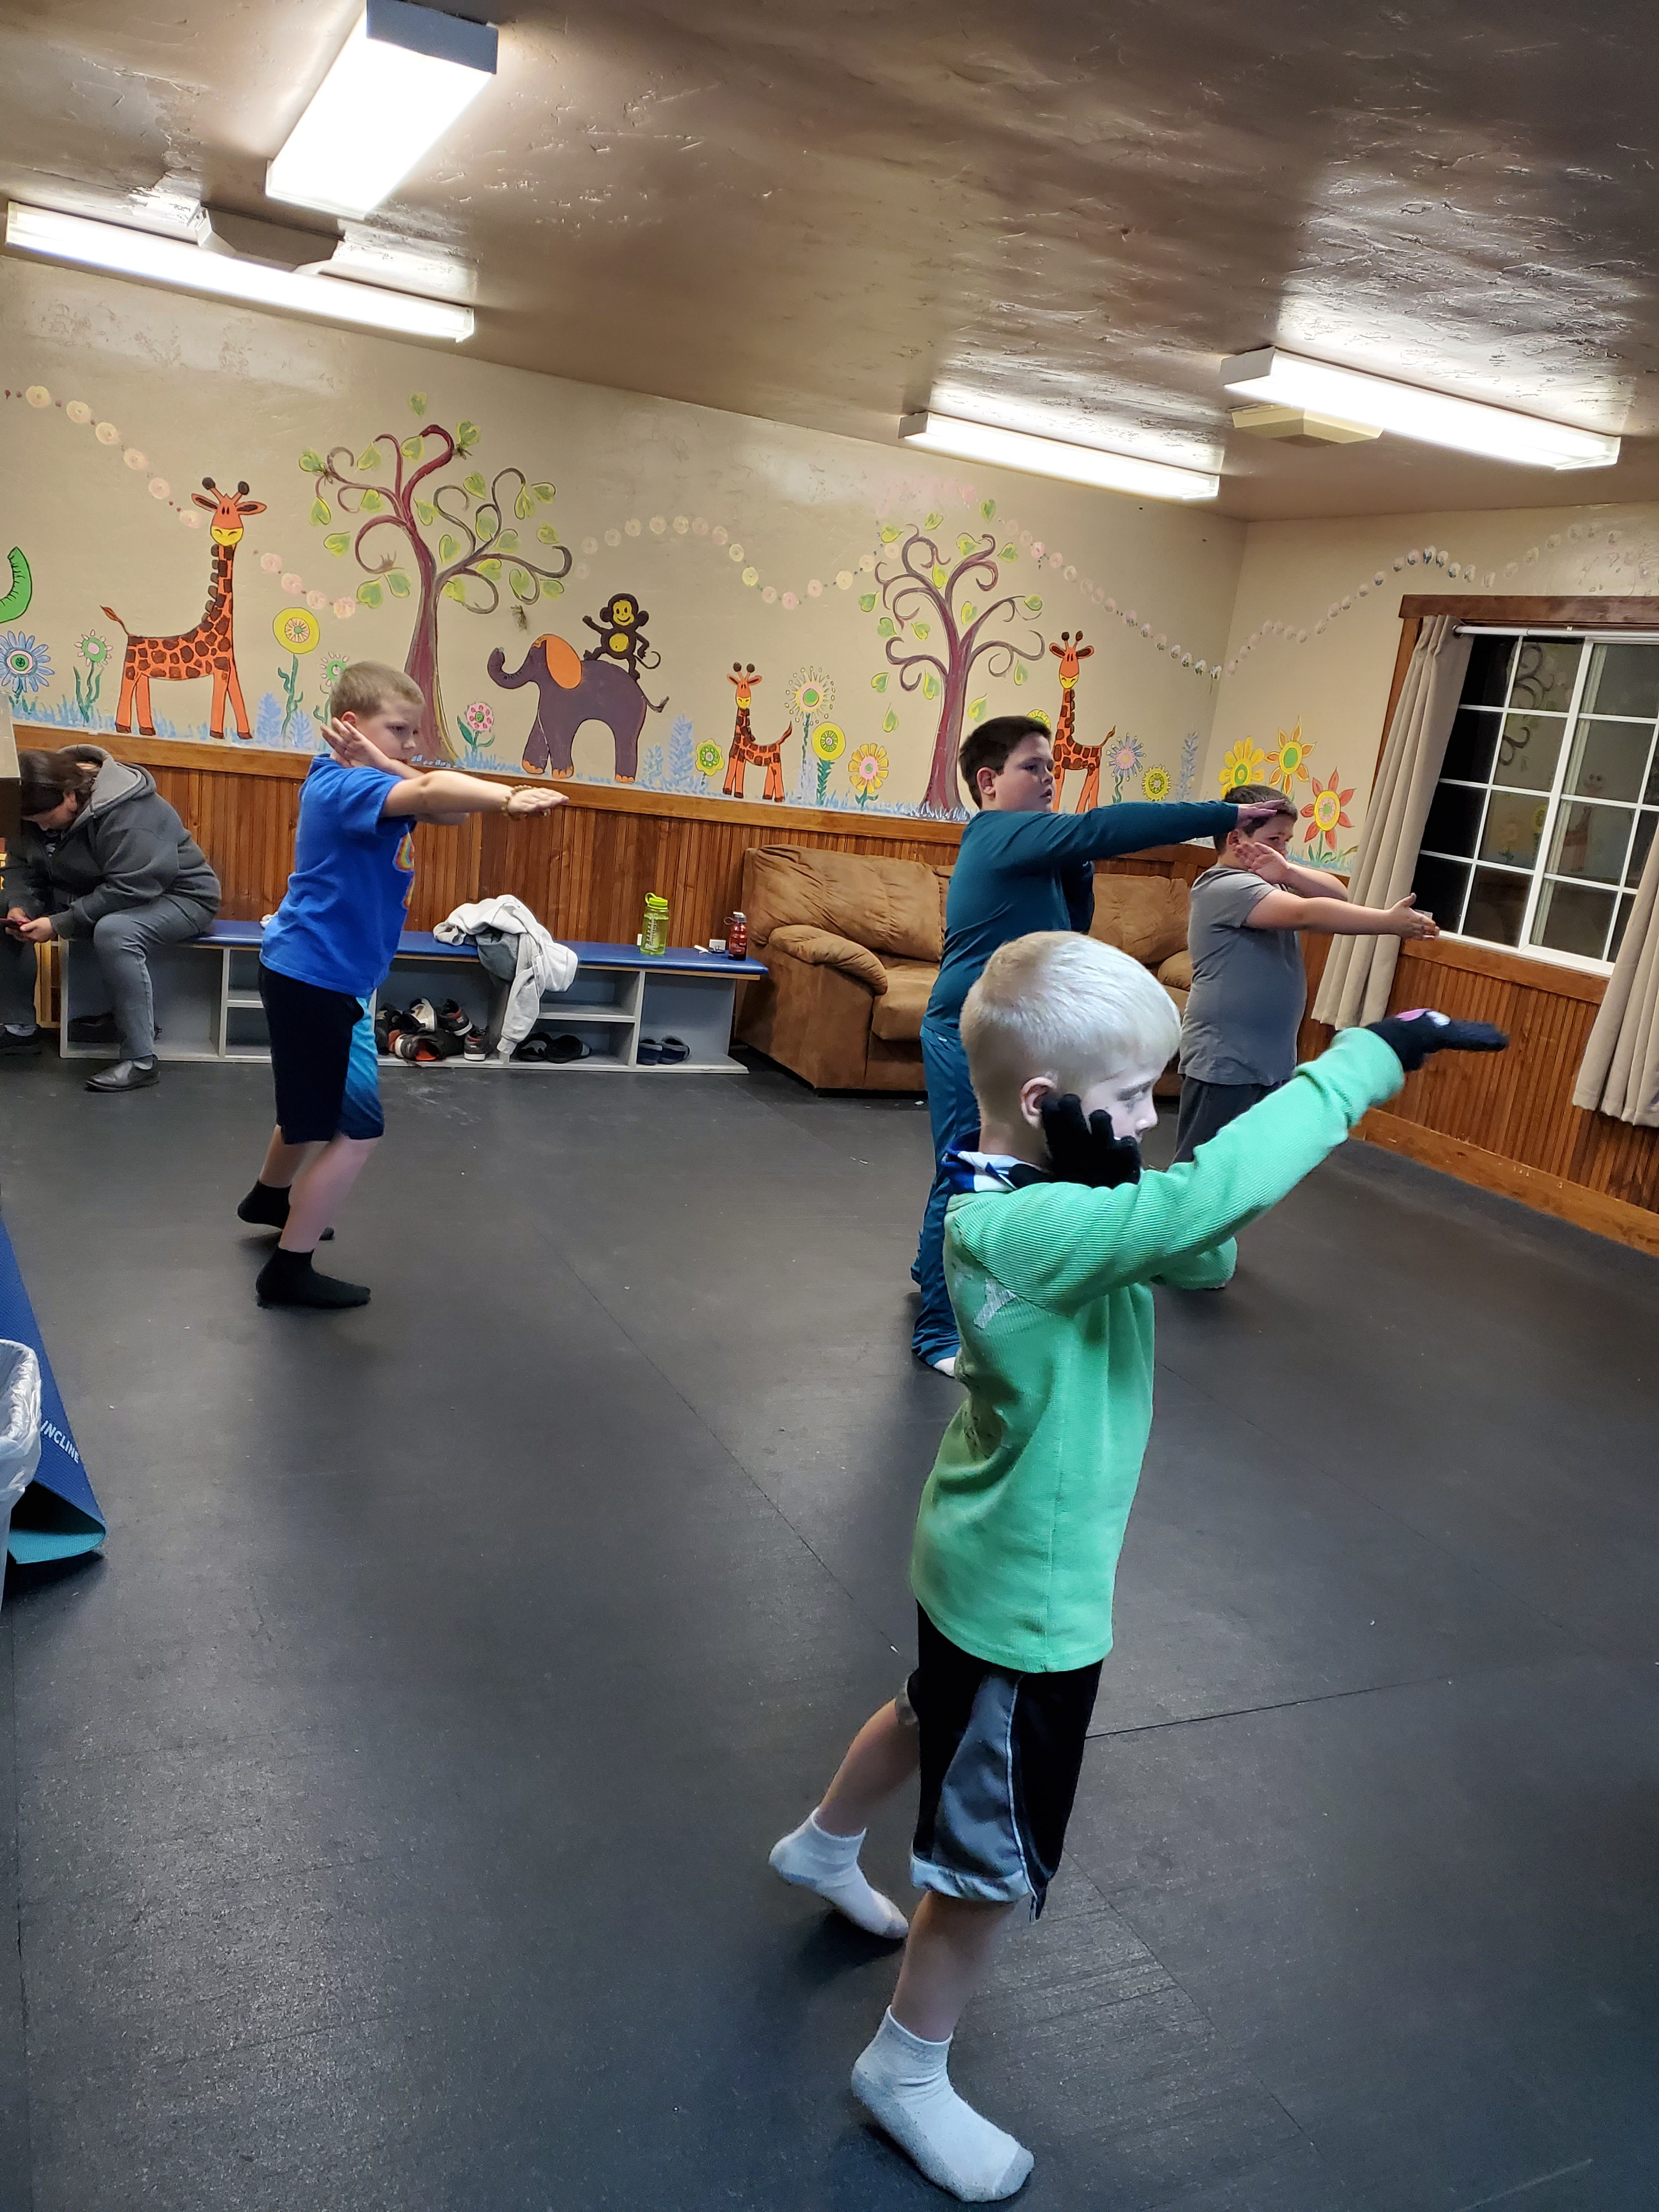 Ages 8 to 12 (Mon. Wed. 6:30-7:30 P.M.)